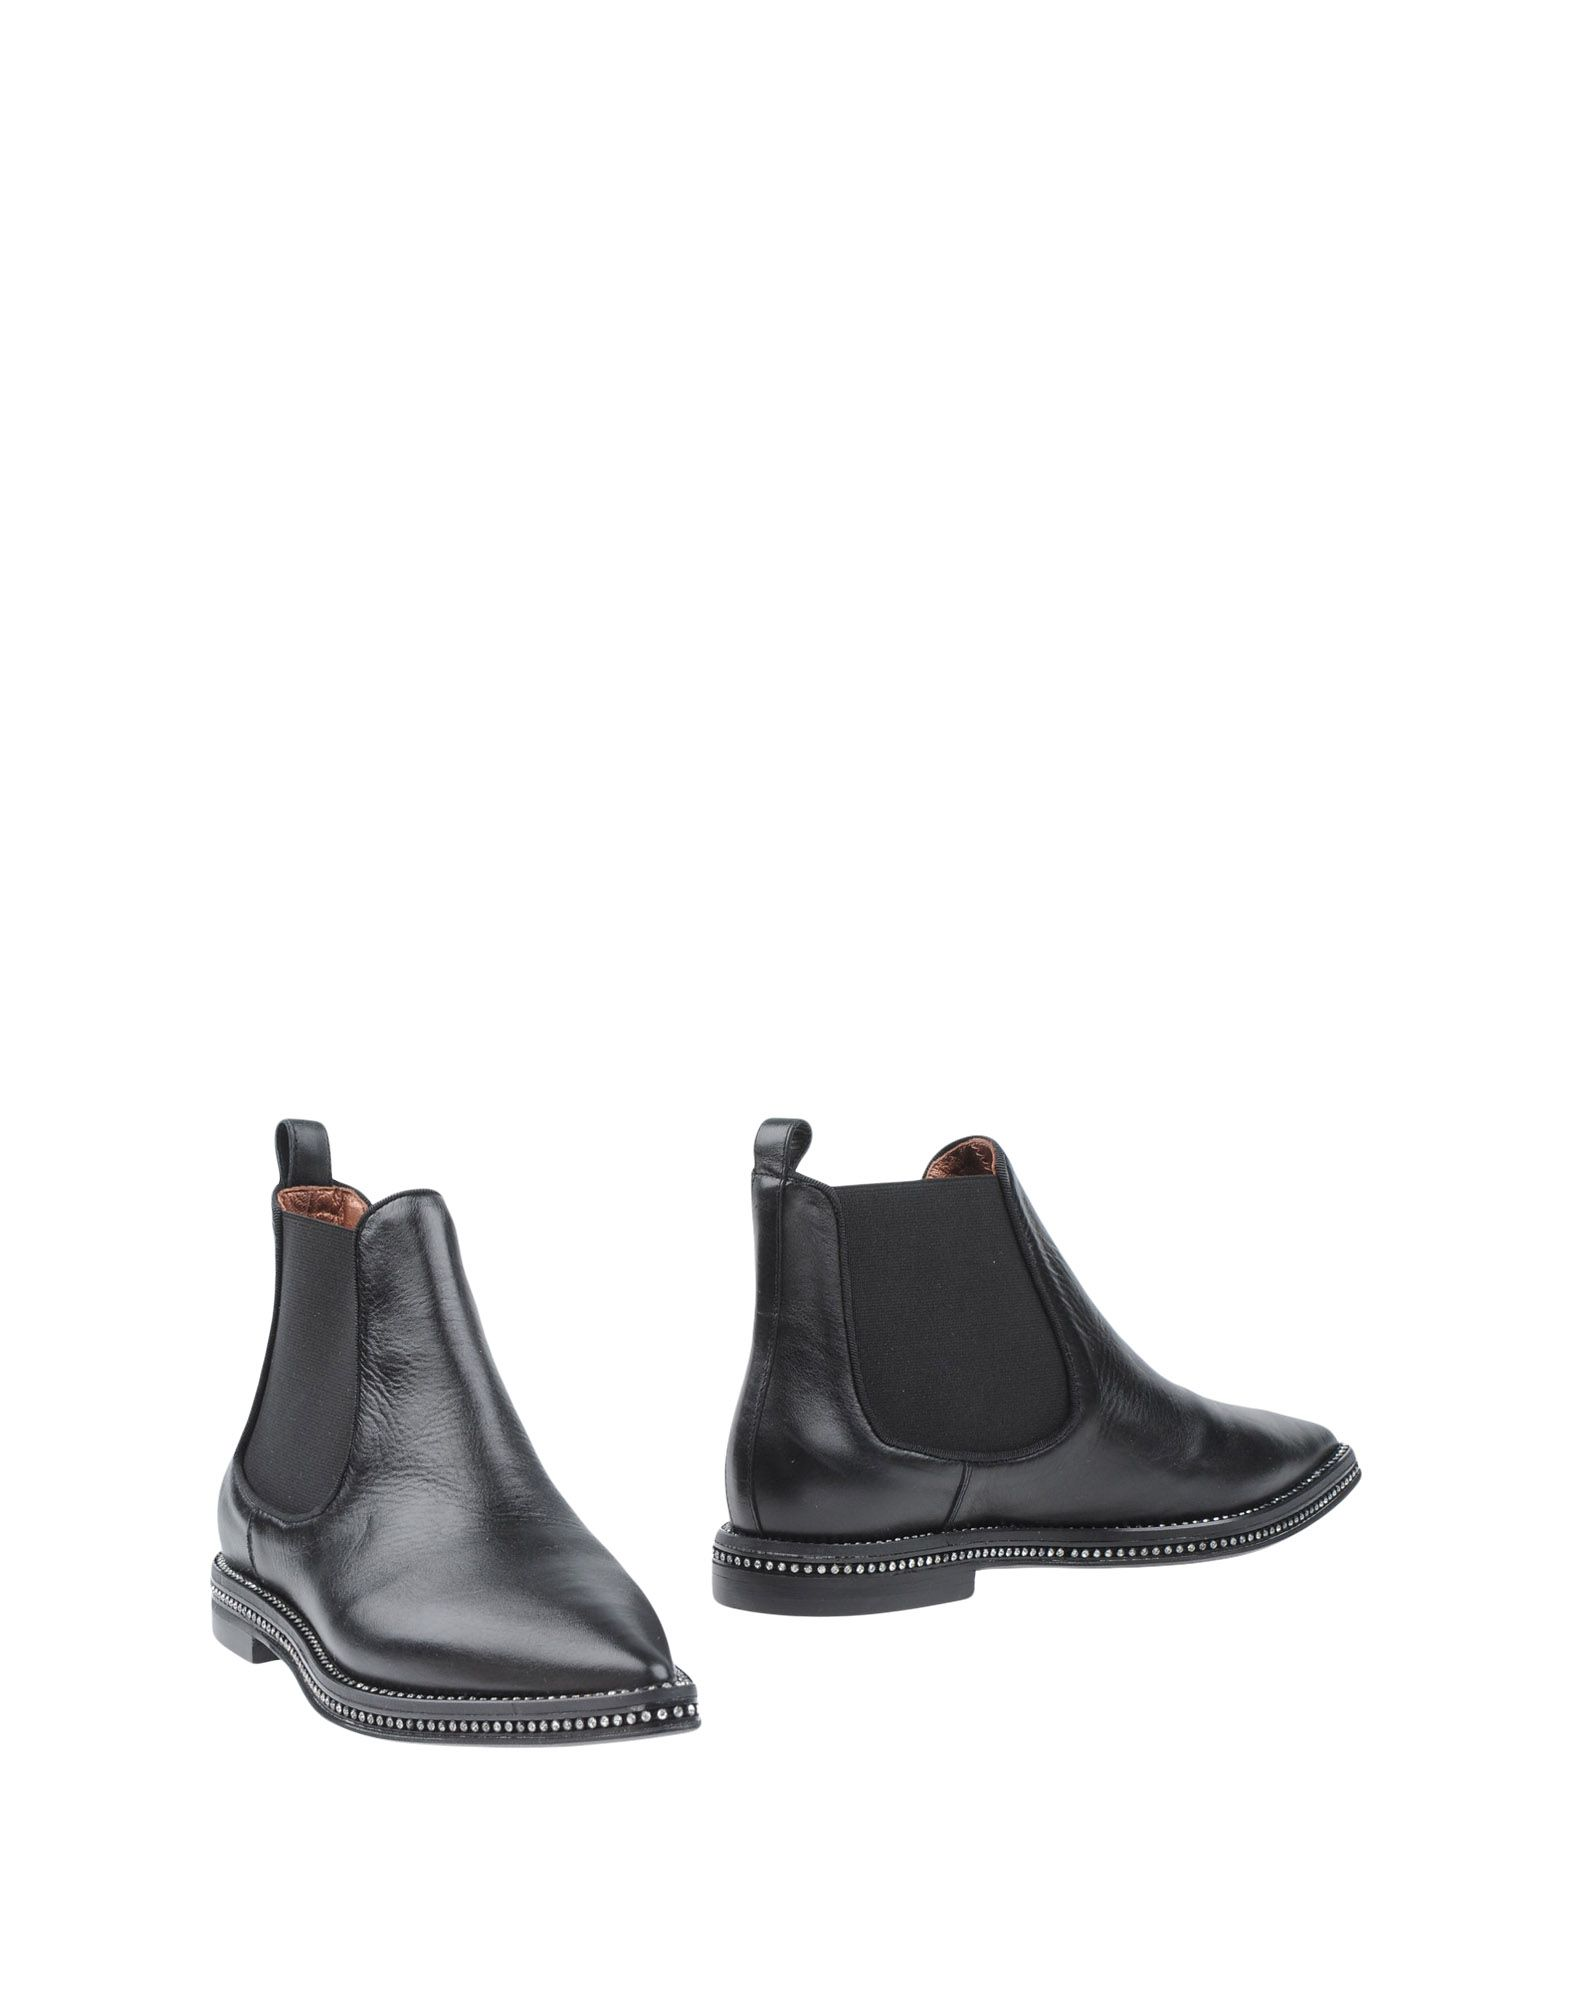 Chelsea Boots Ras Donna - 11319845SV